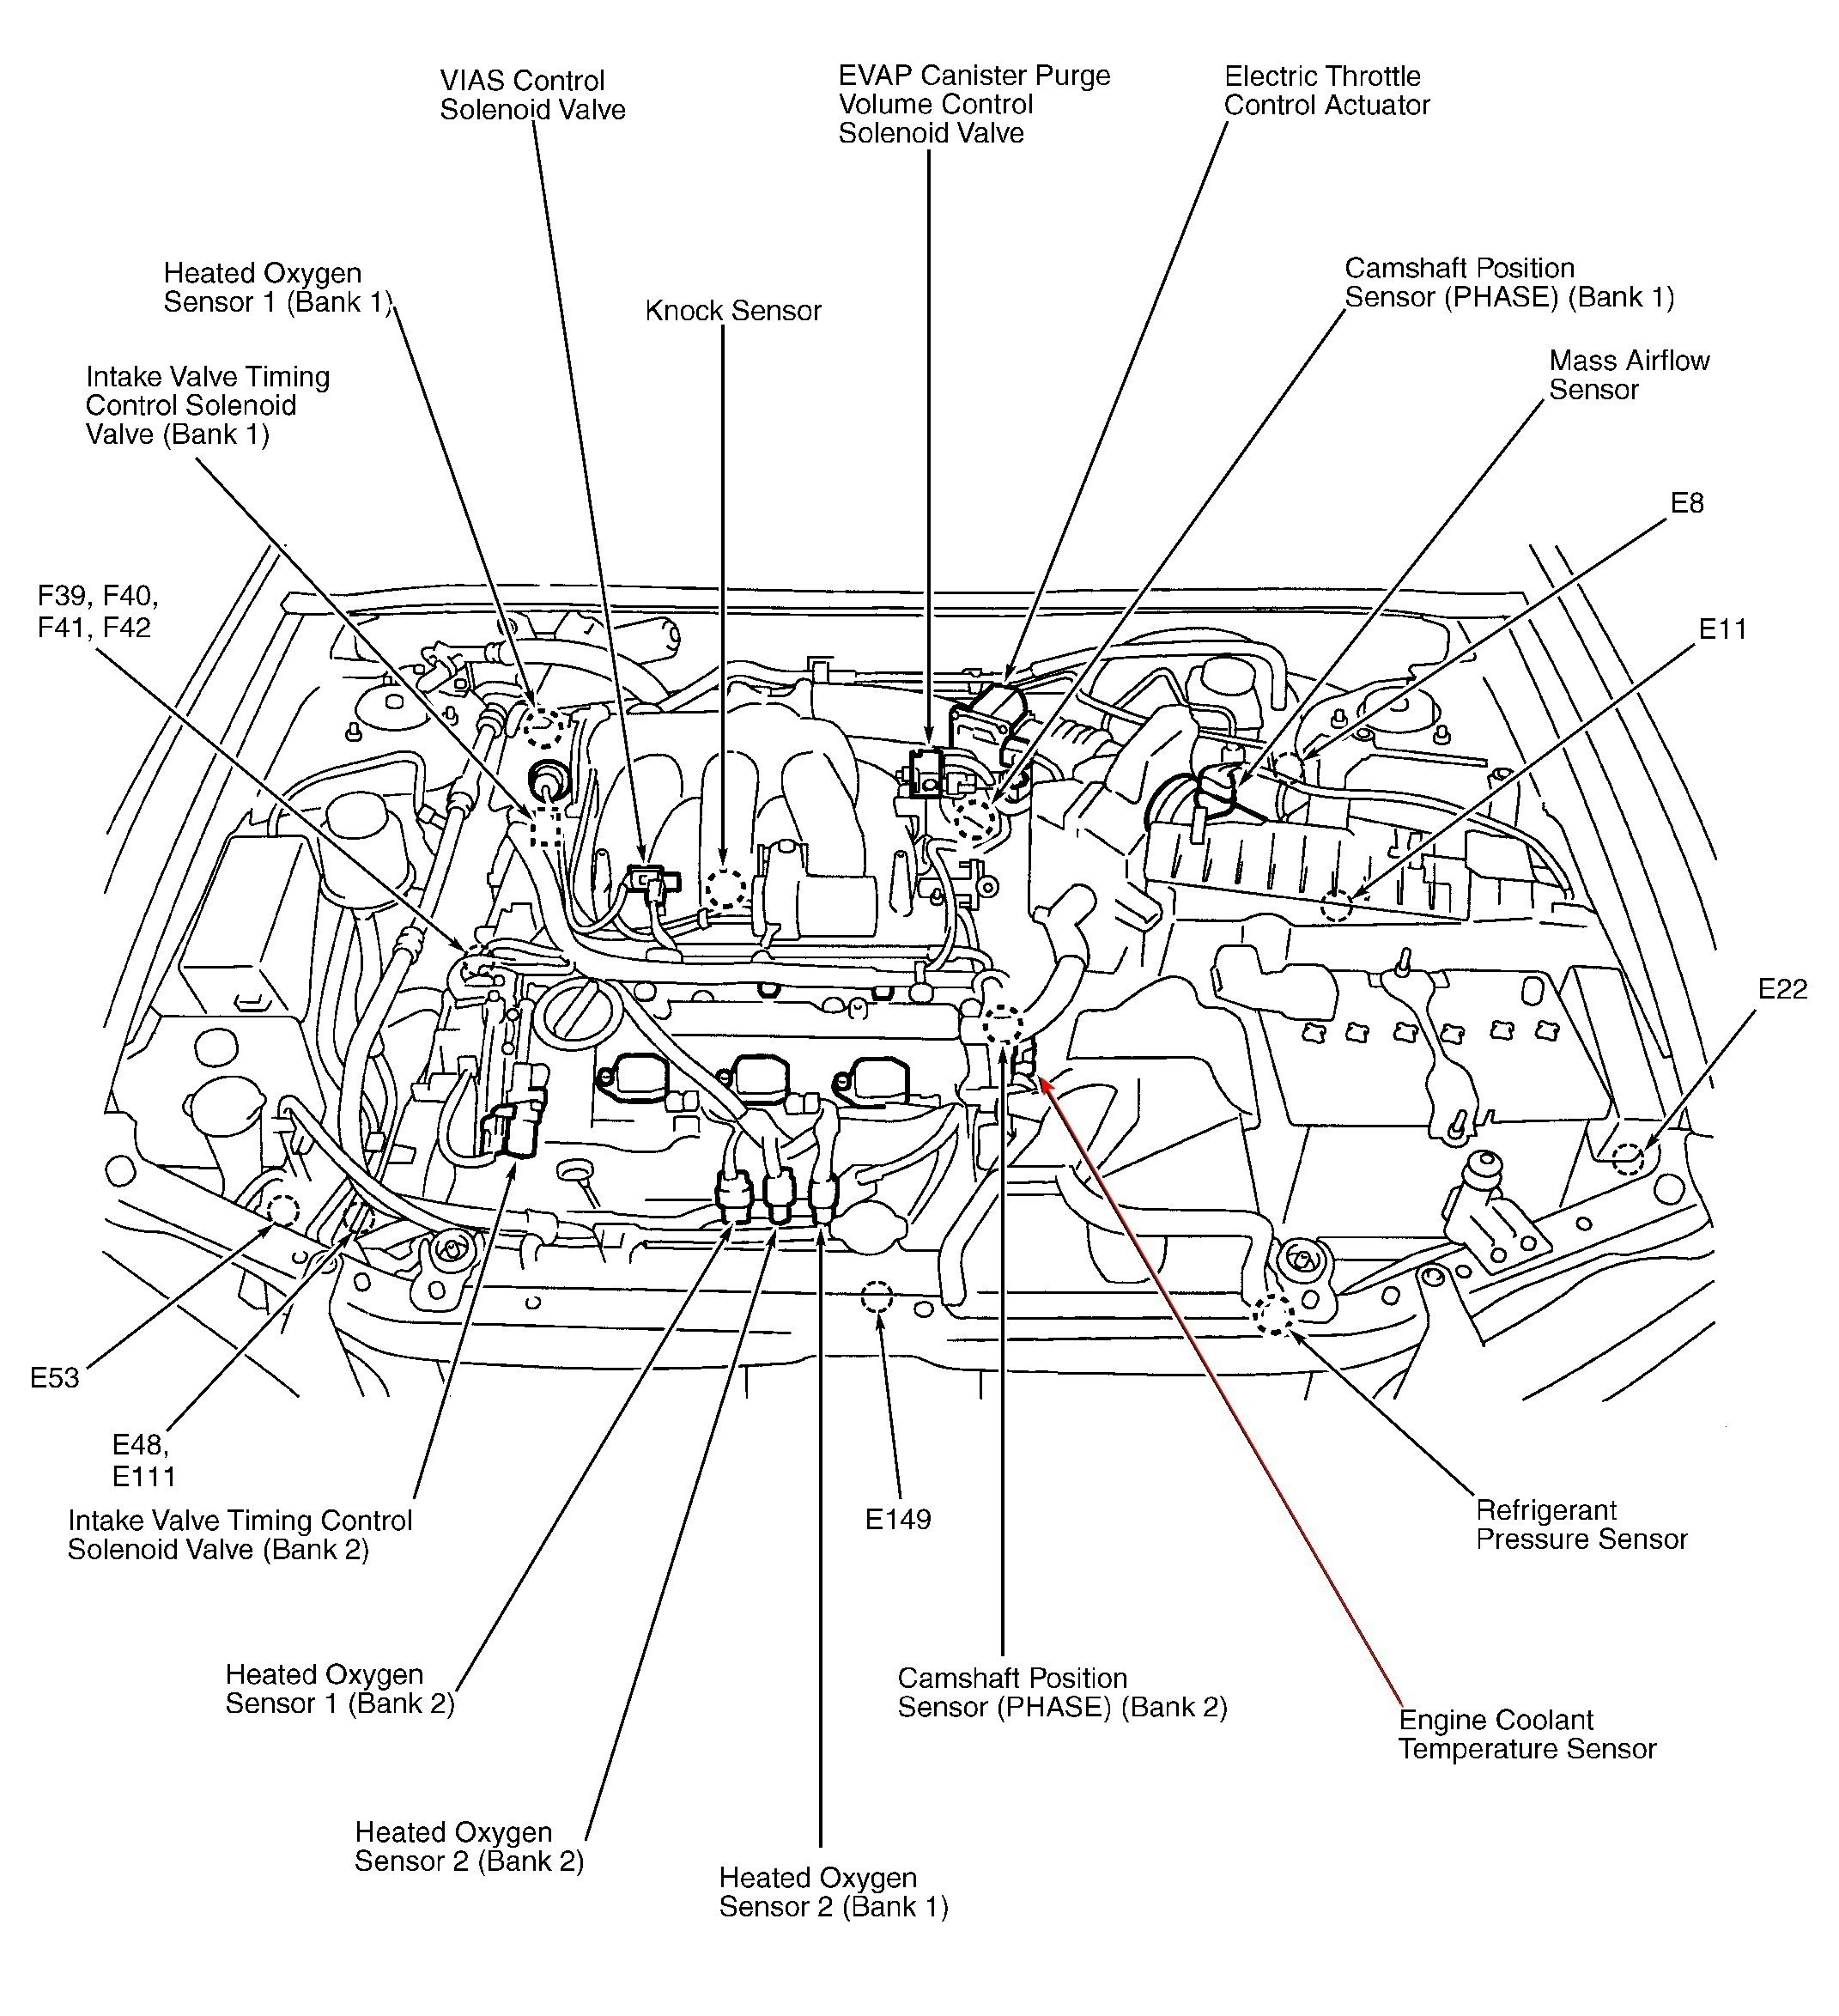 2001 Nissan Altima Engine Diagram 2000 Maxima Engine Diagram Wiring Diagram Datasource Of 2001 Nissan Altima Engine Diagram